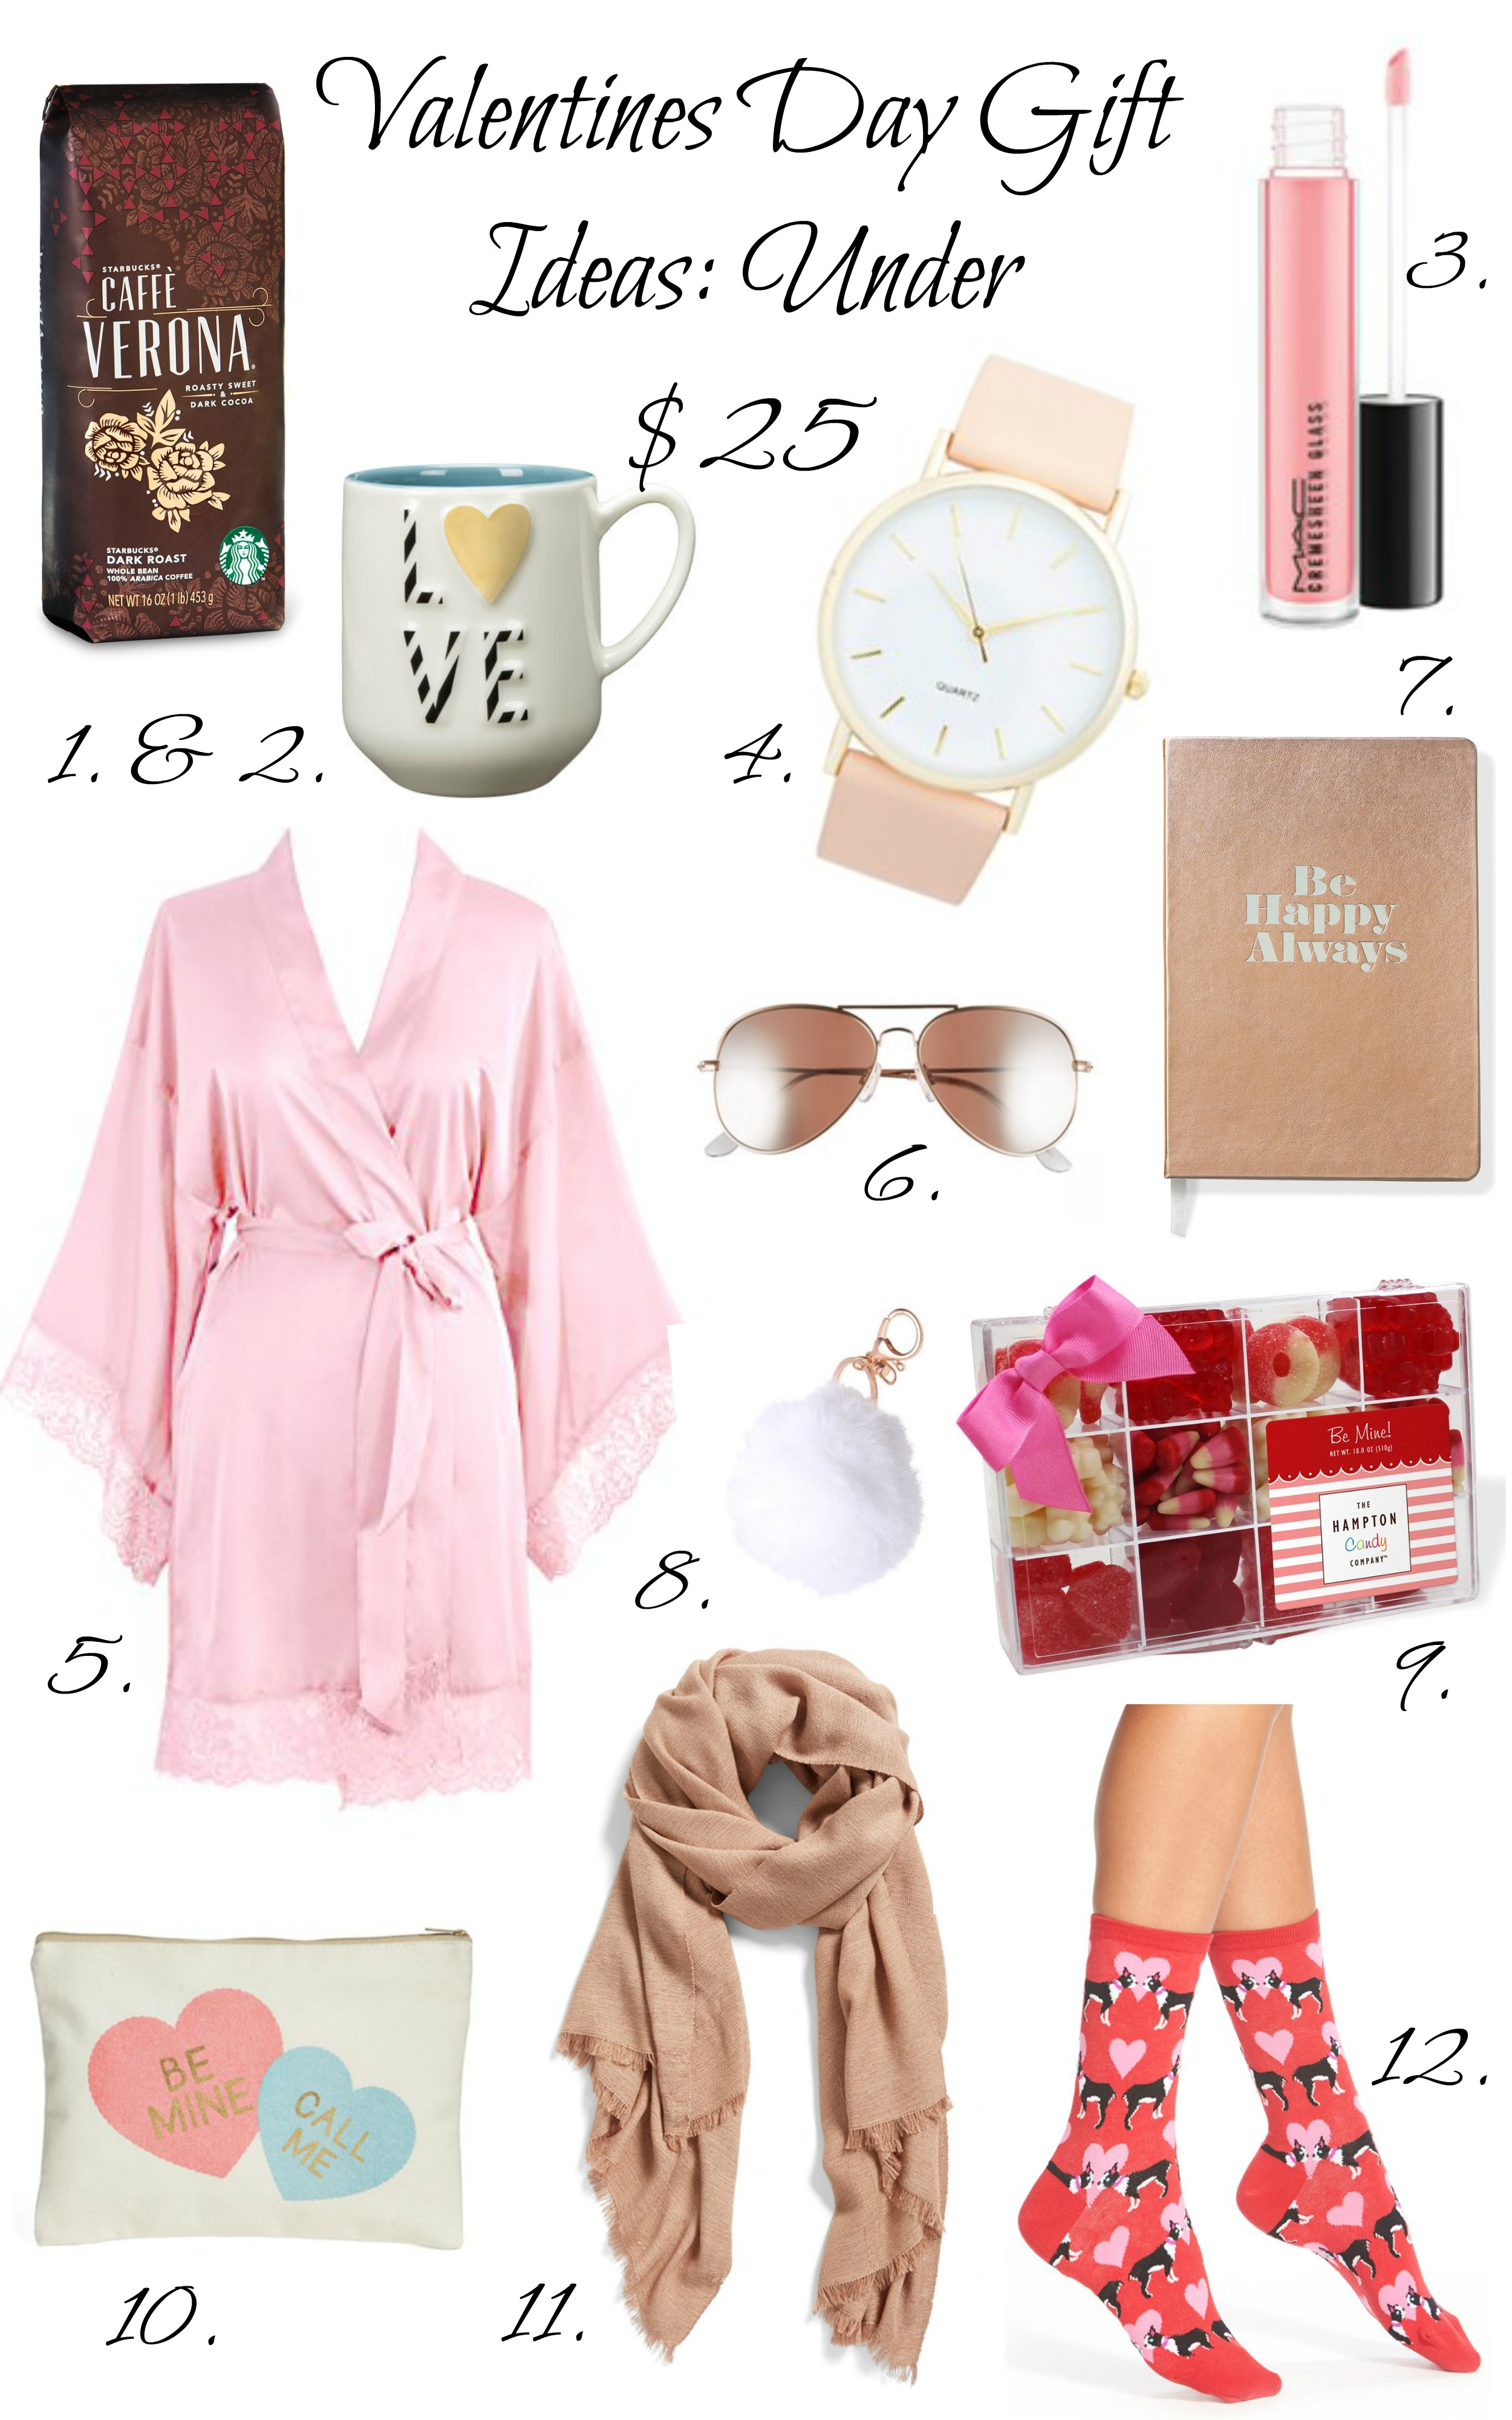 Valentines Day Gift Ideas: Under $25